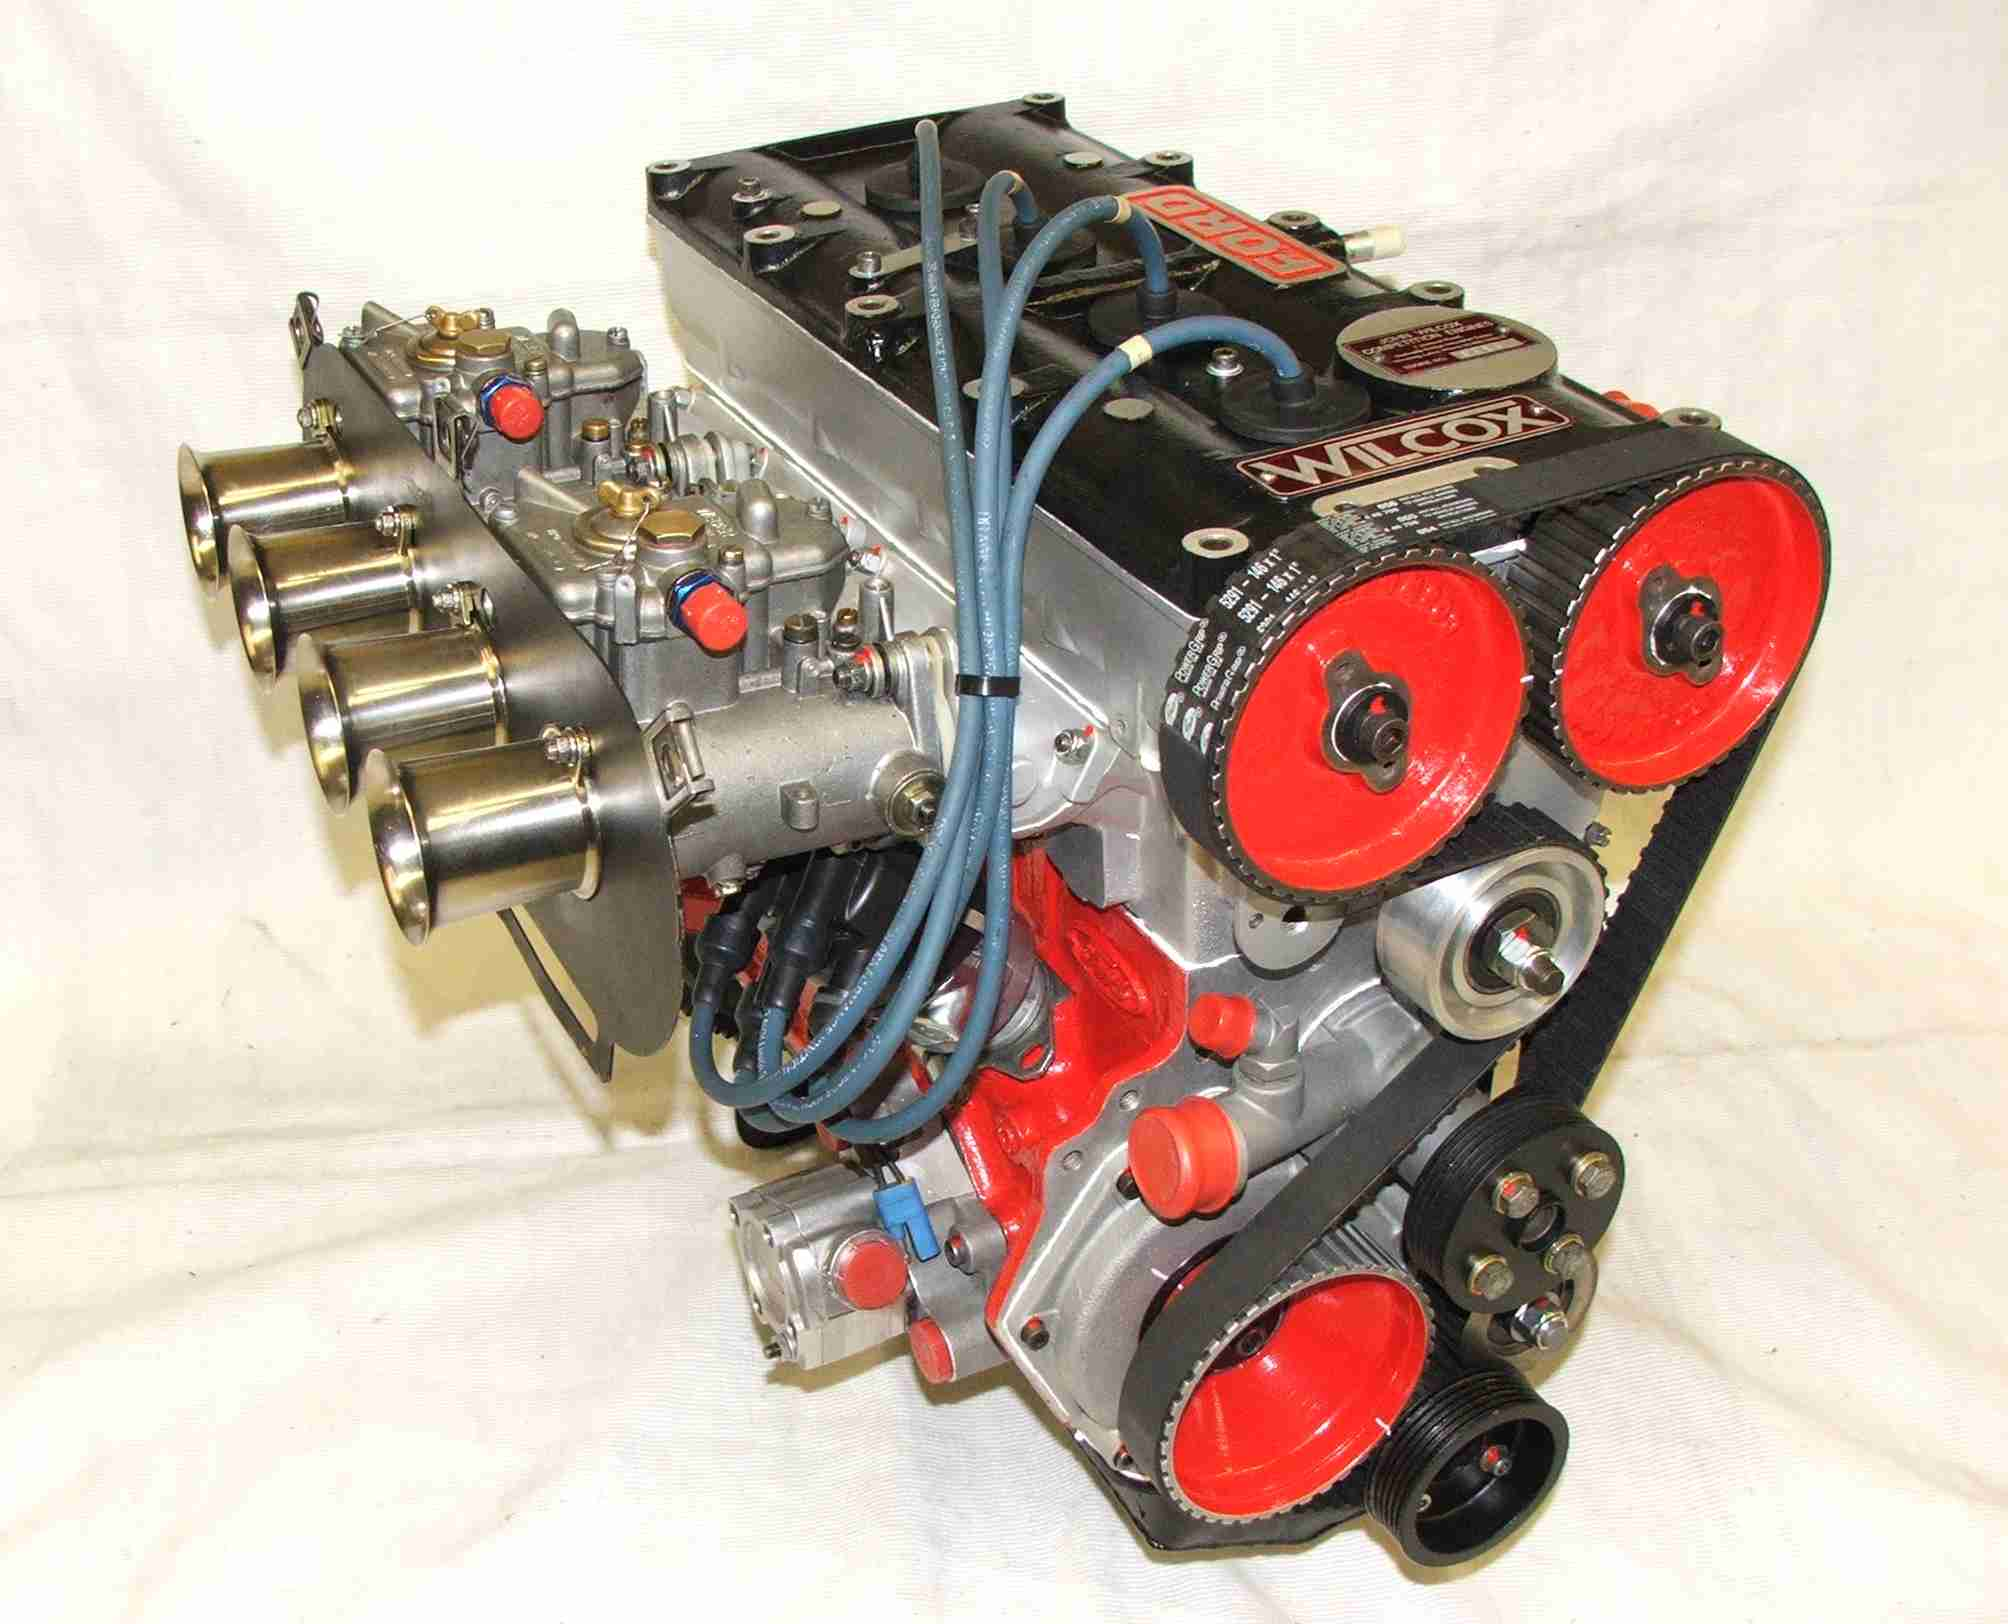 Fourtitude com - Most Beautiful Engines